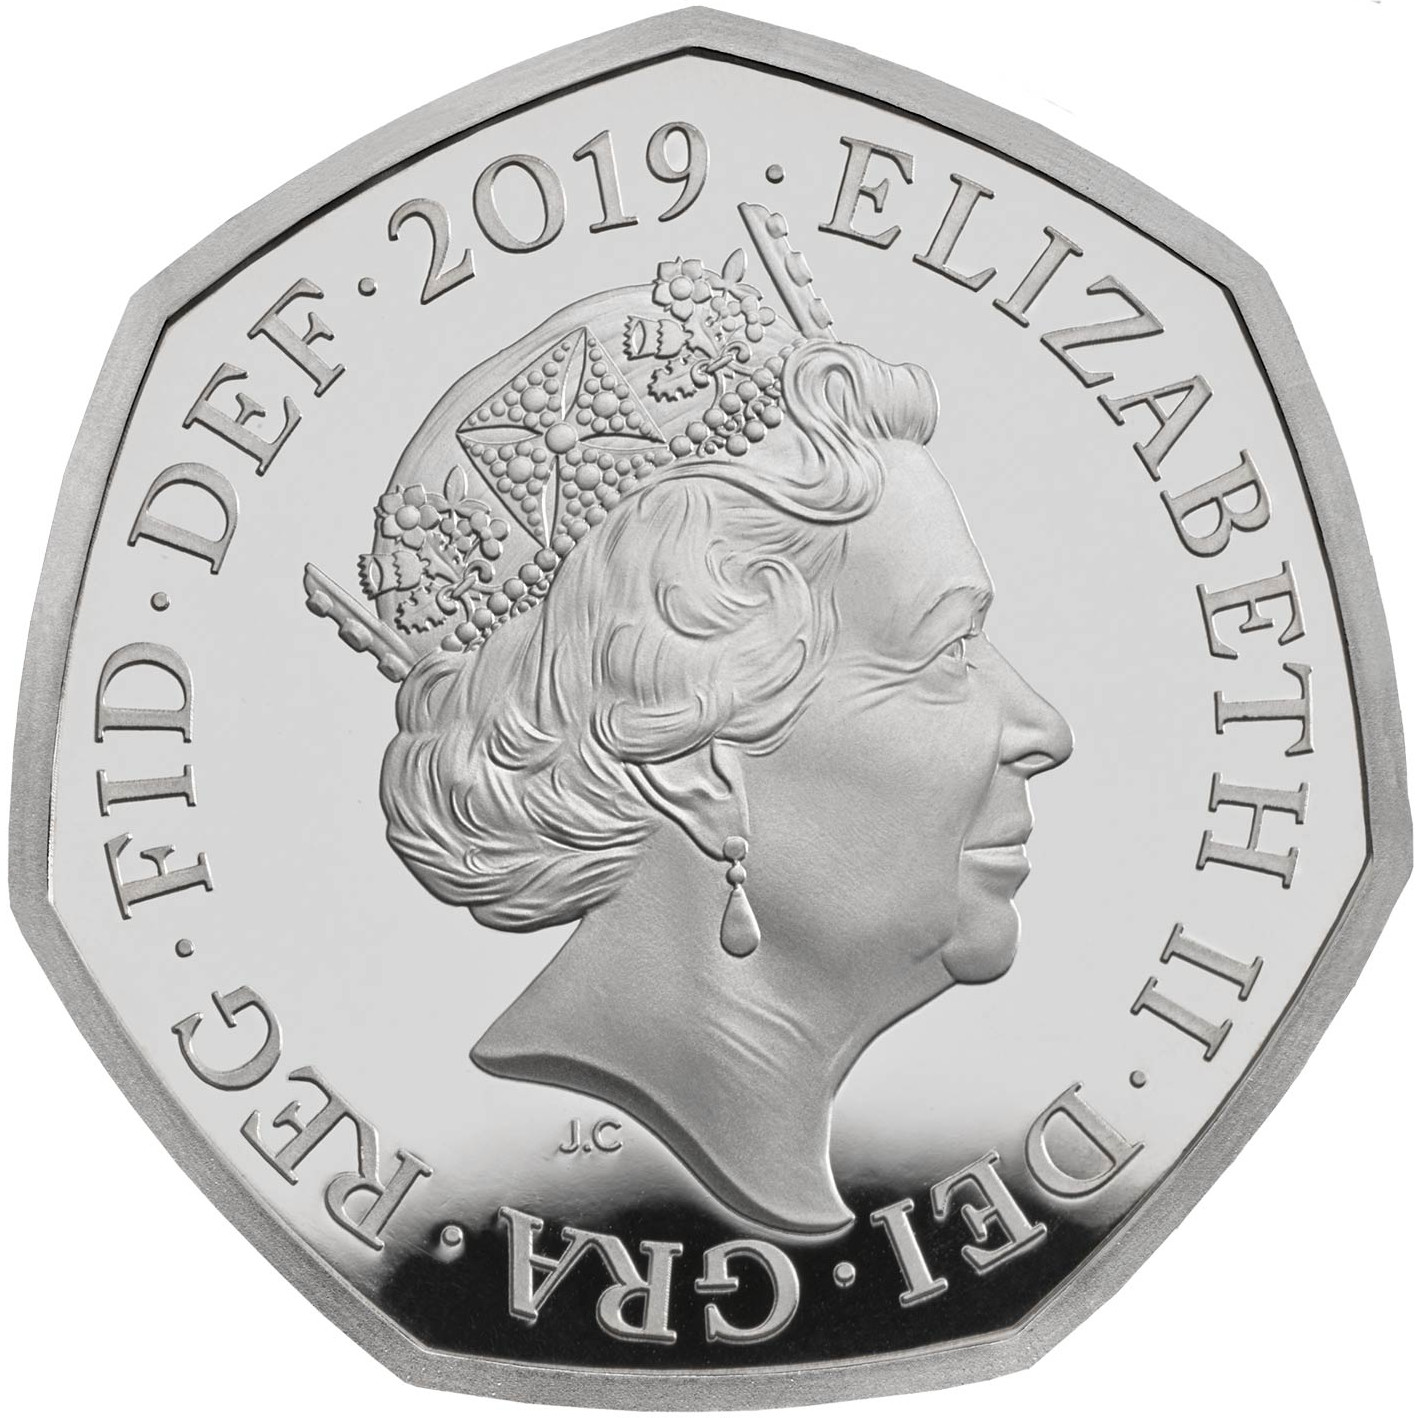 Fifty Pence 2019 Sherlock Holmes: Photo Sherlock Holmes 2019 UK 50p Proof Coin